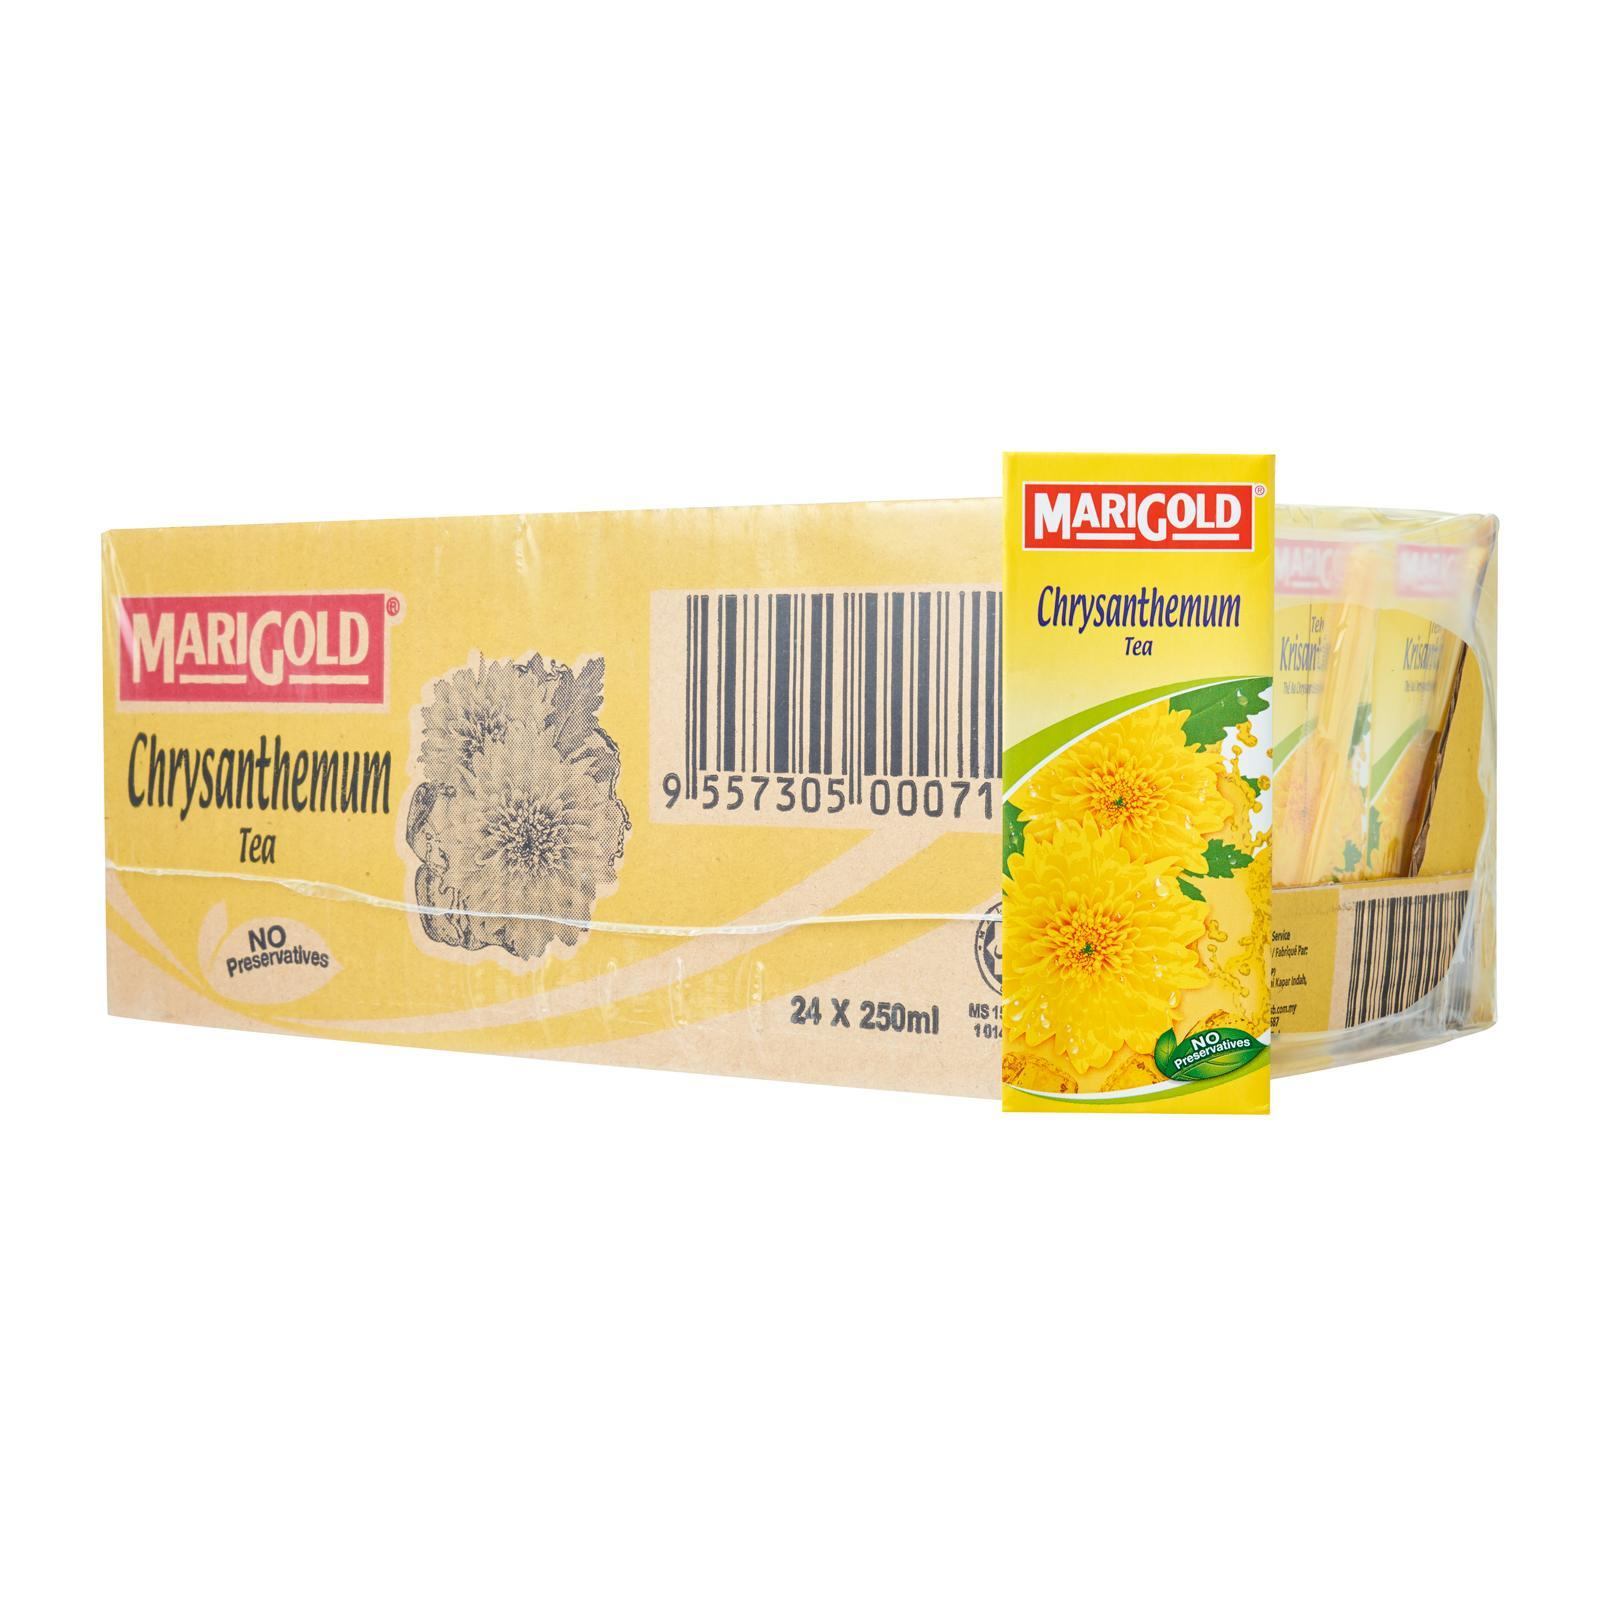 Marigold Packet Drink - Chrysanthemum Tea